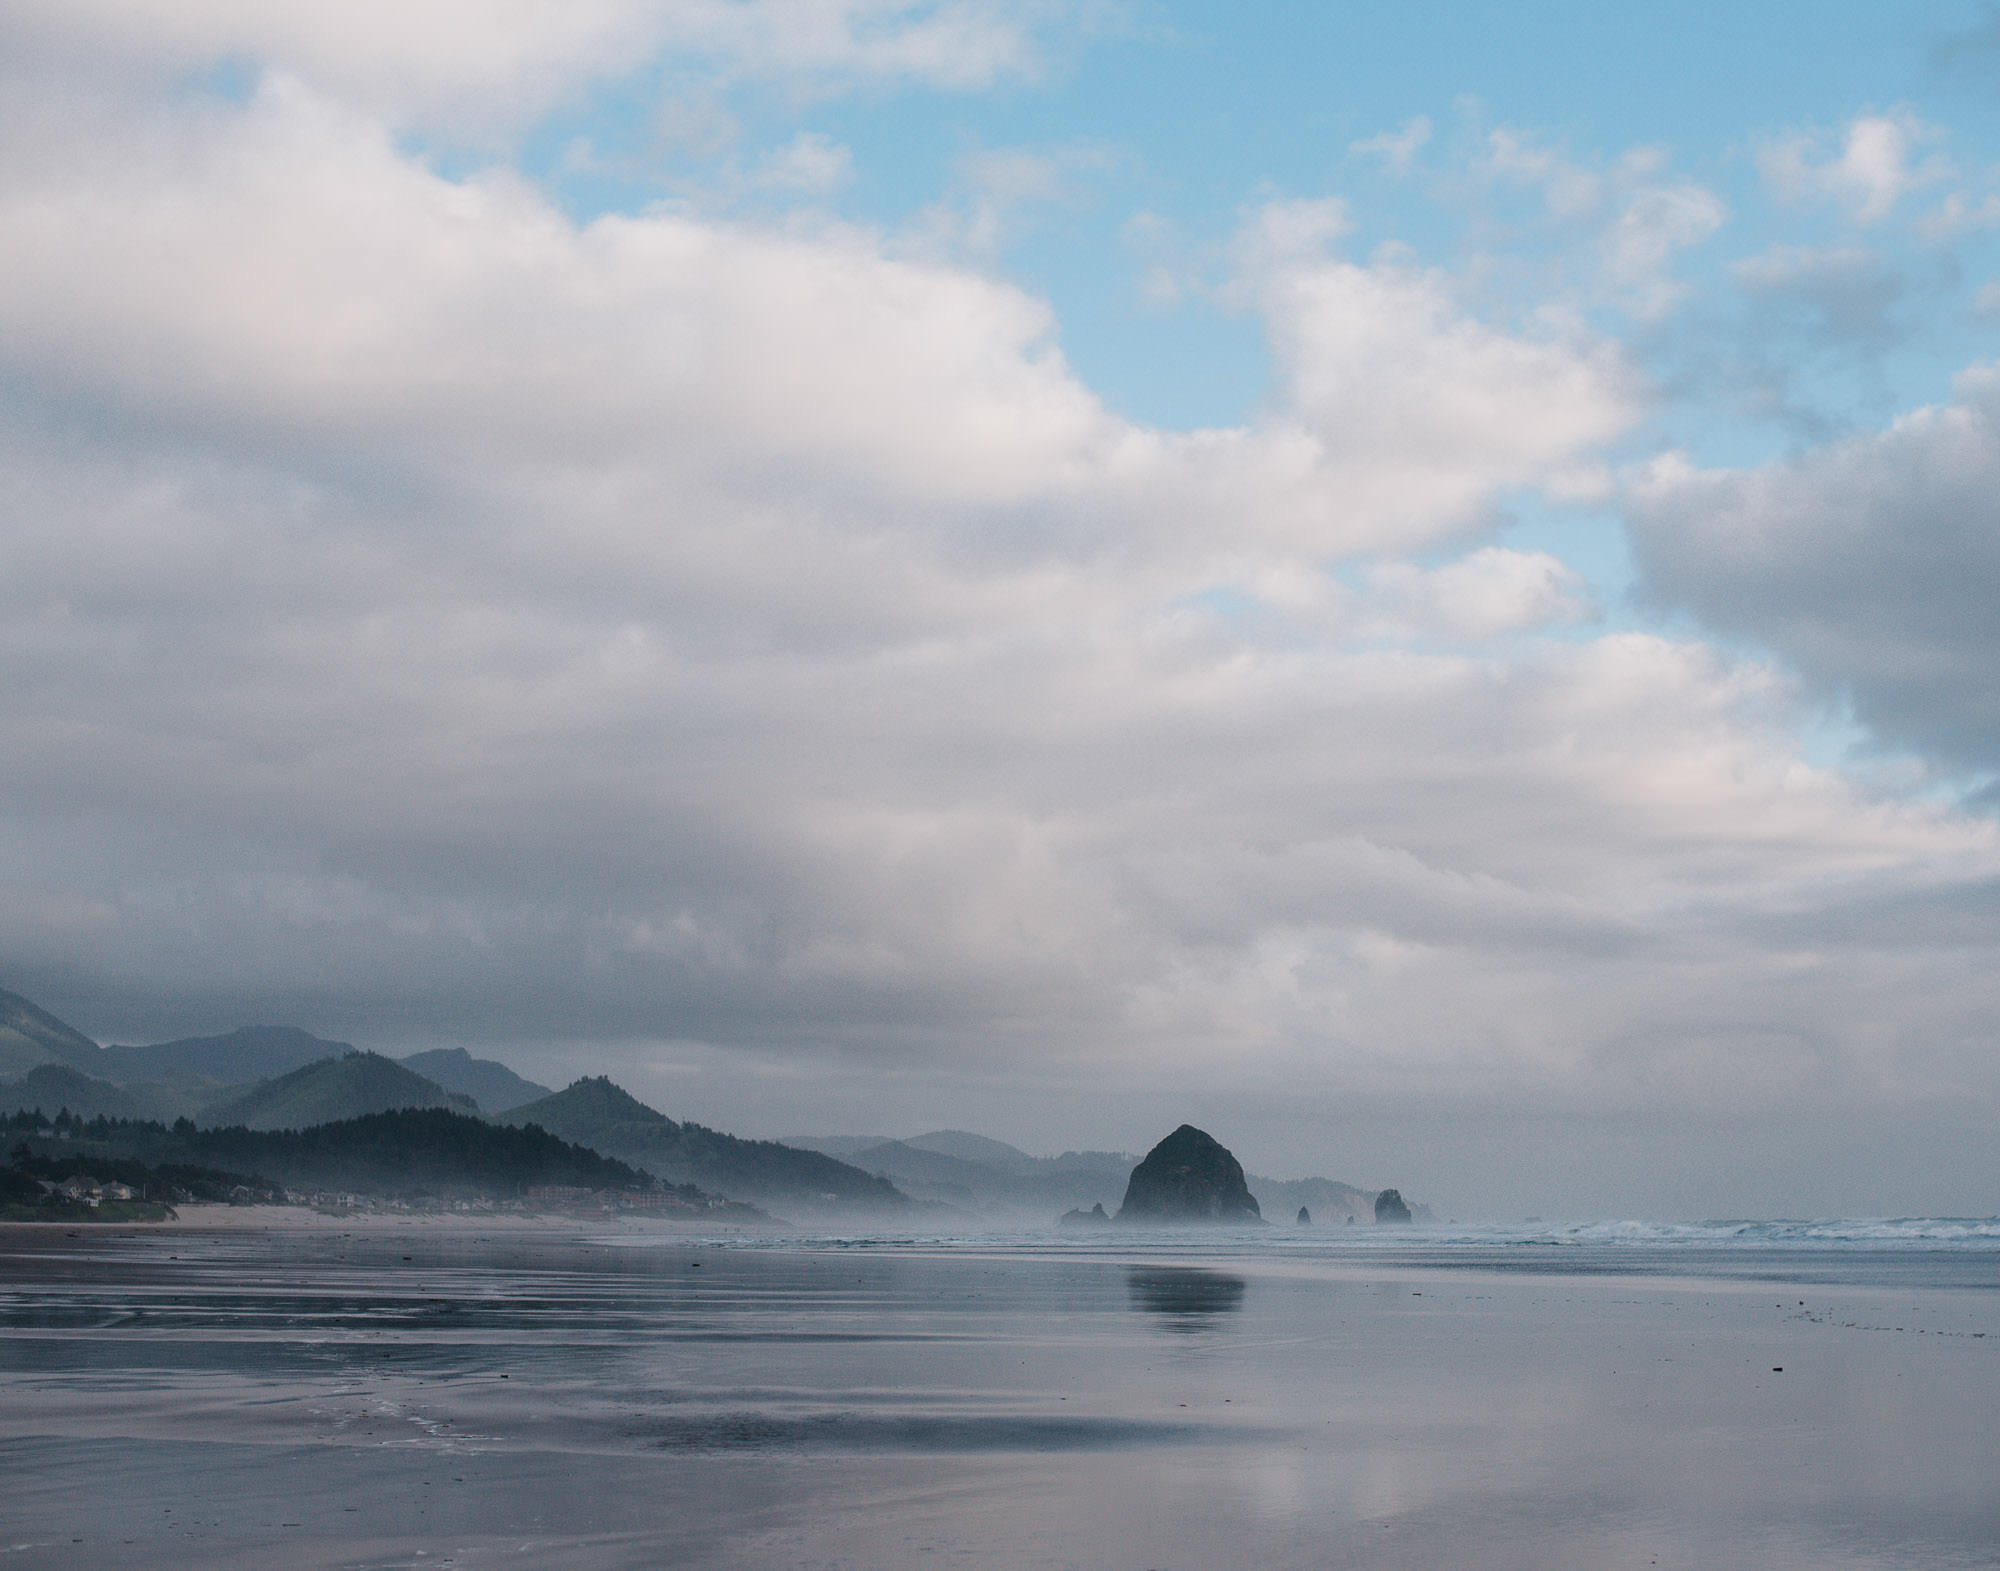 view of the beach in Oregon with the water reflecting the sky and mountains in the background